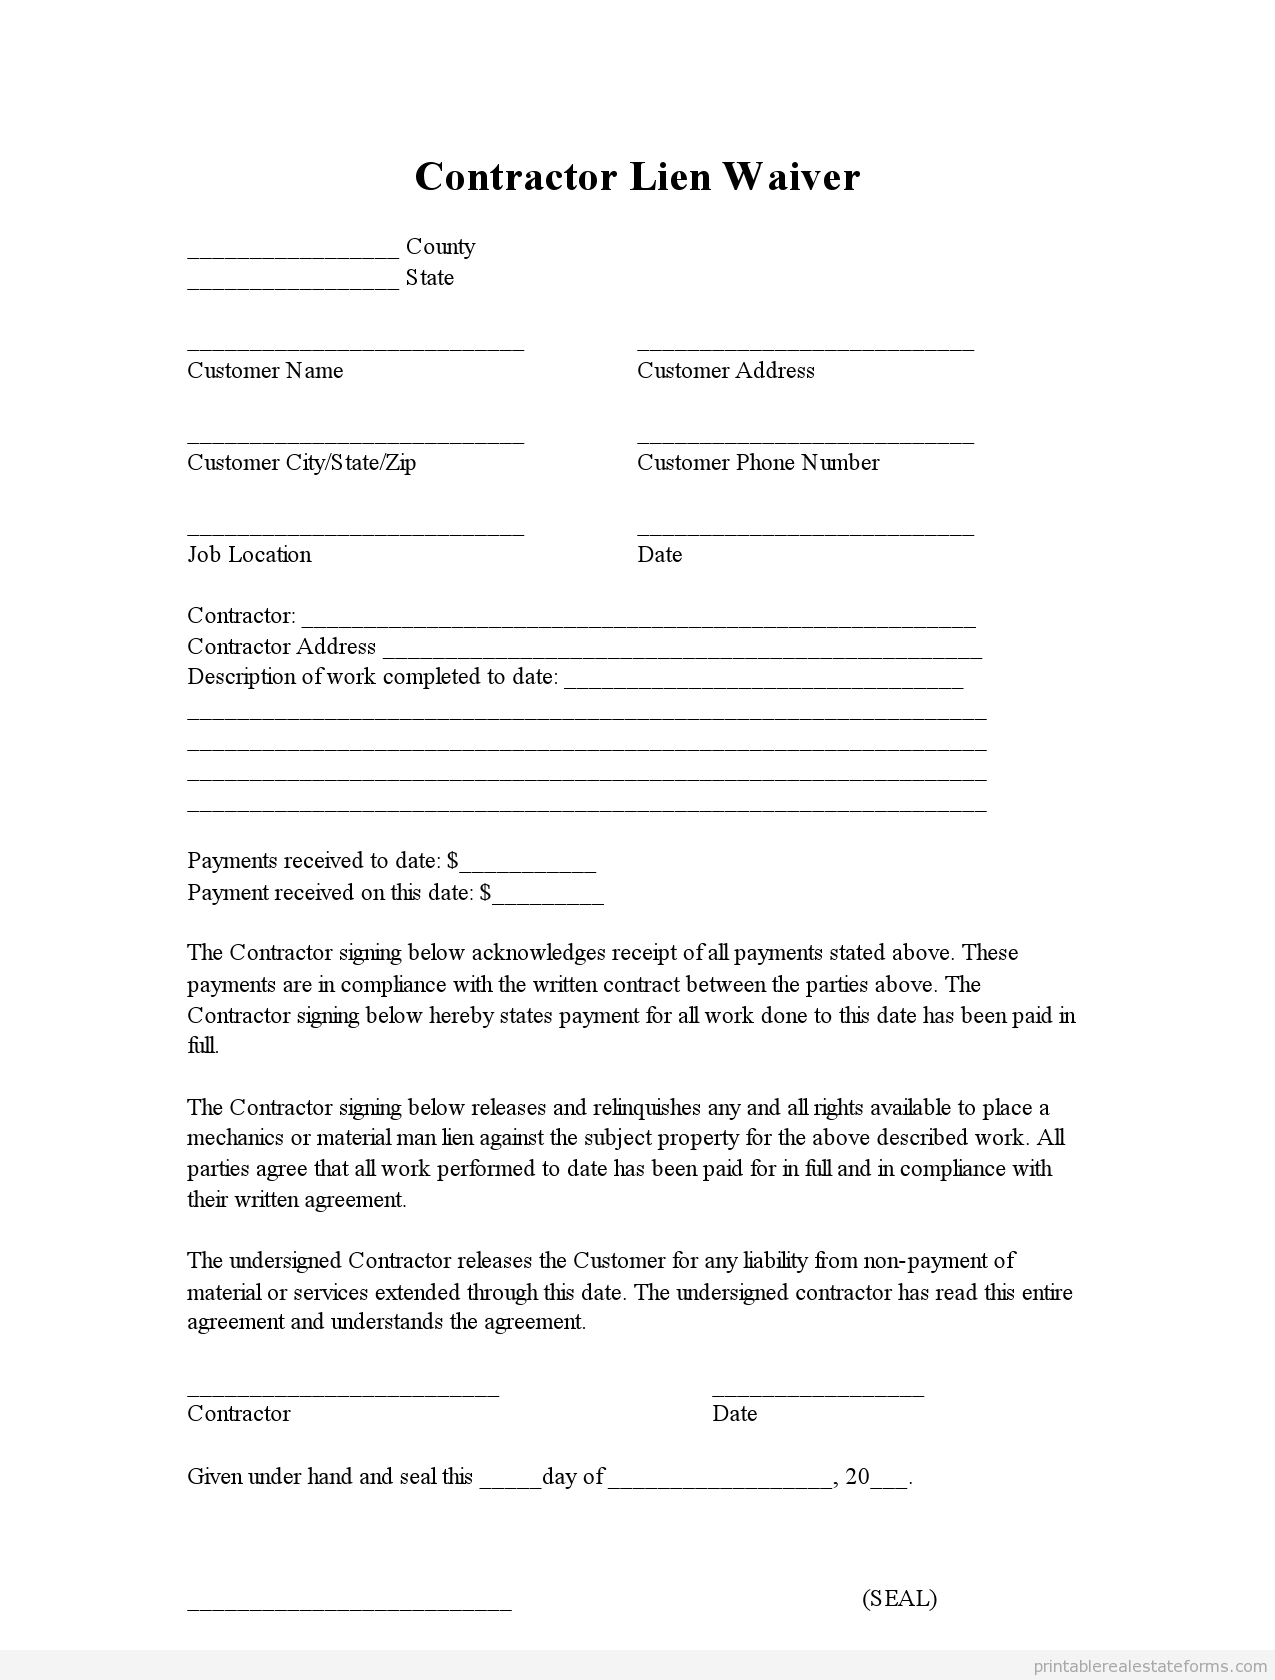 Mechanics Lien Letter Template - Sample Printable Contractor Lien Waiver form